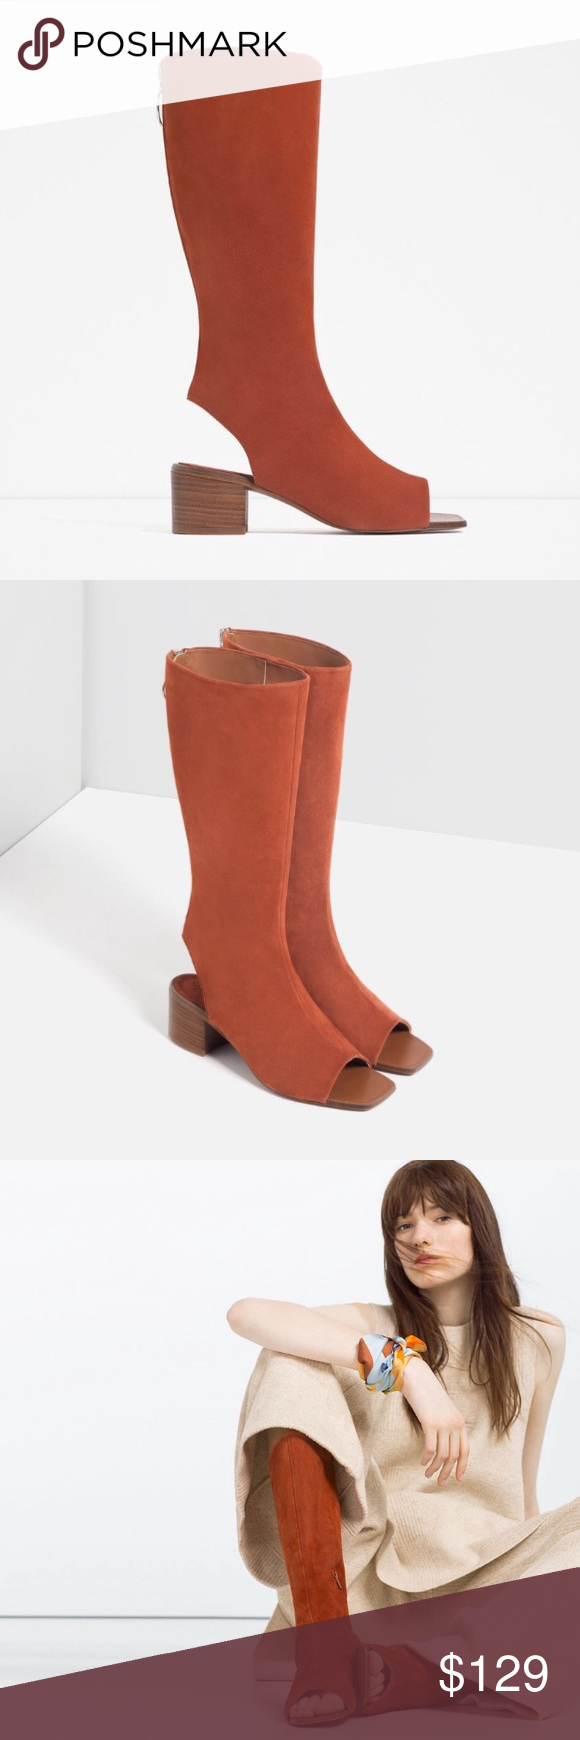 Leather Ankle Boot Sandals 2109/101 Zara genuine leather sandals. Brick color 100% goat leather! Super cute sandals , brand new with tags. Sold out online!! US 8 EU 39 Zara Shoes Sandals